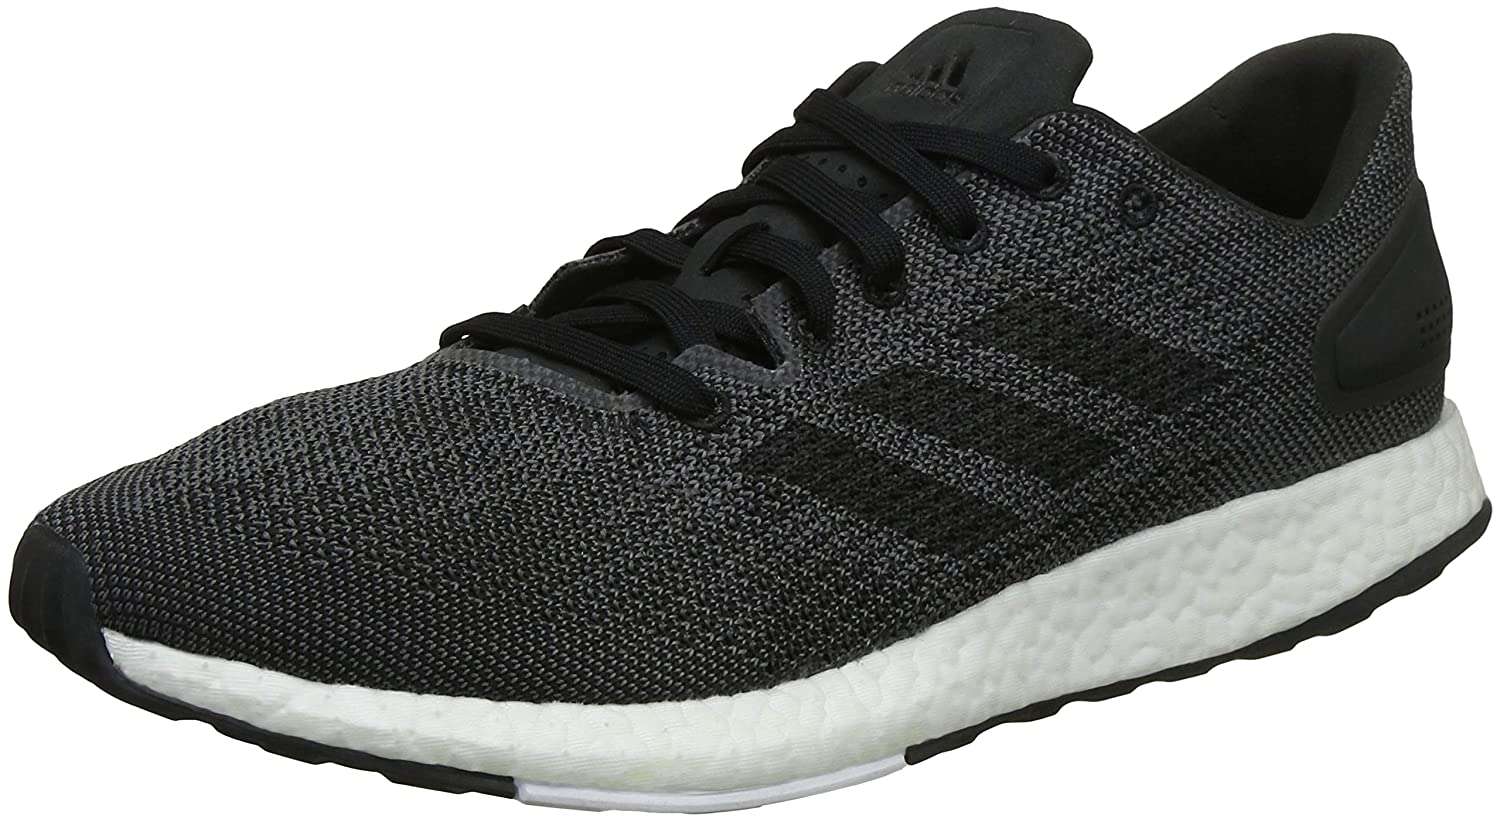 Gentlemen/Ladies adidas Men''s Pureboost DPR Competition Running Shoes Beautiful Special purchase Beautiful Shoes appearance Good quality BB4096 e01a38